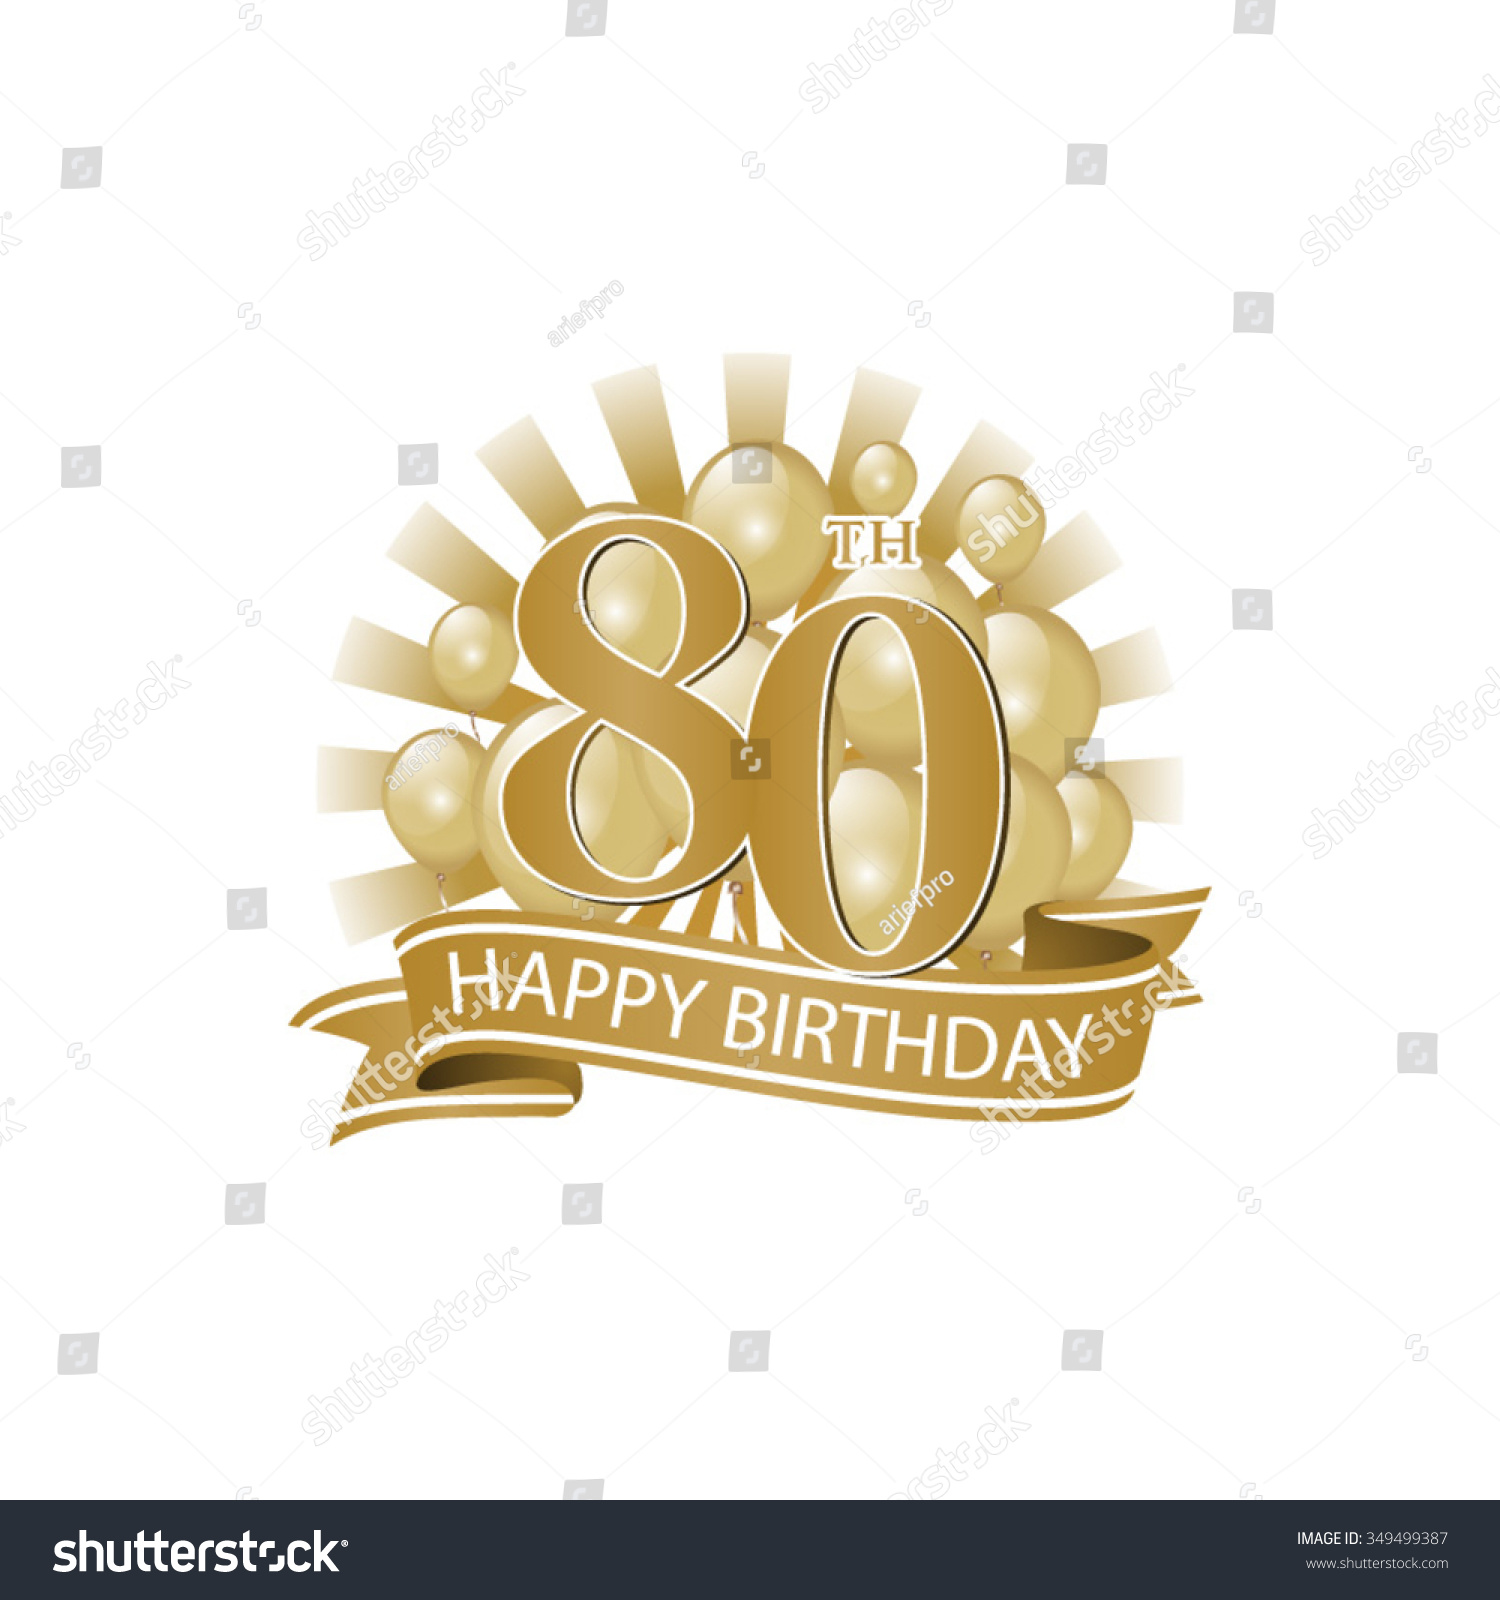 Happy 80th Birthday Cake Images